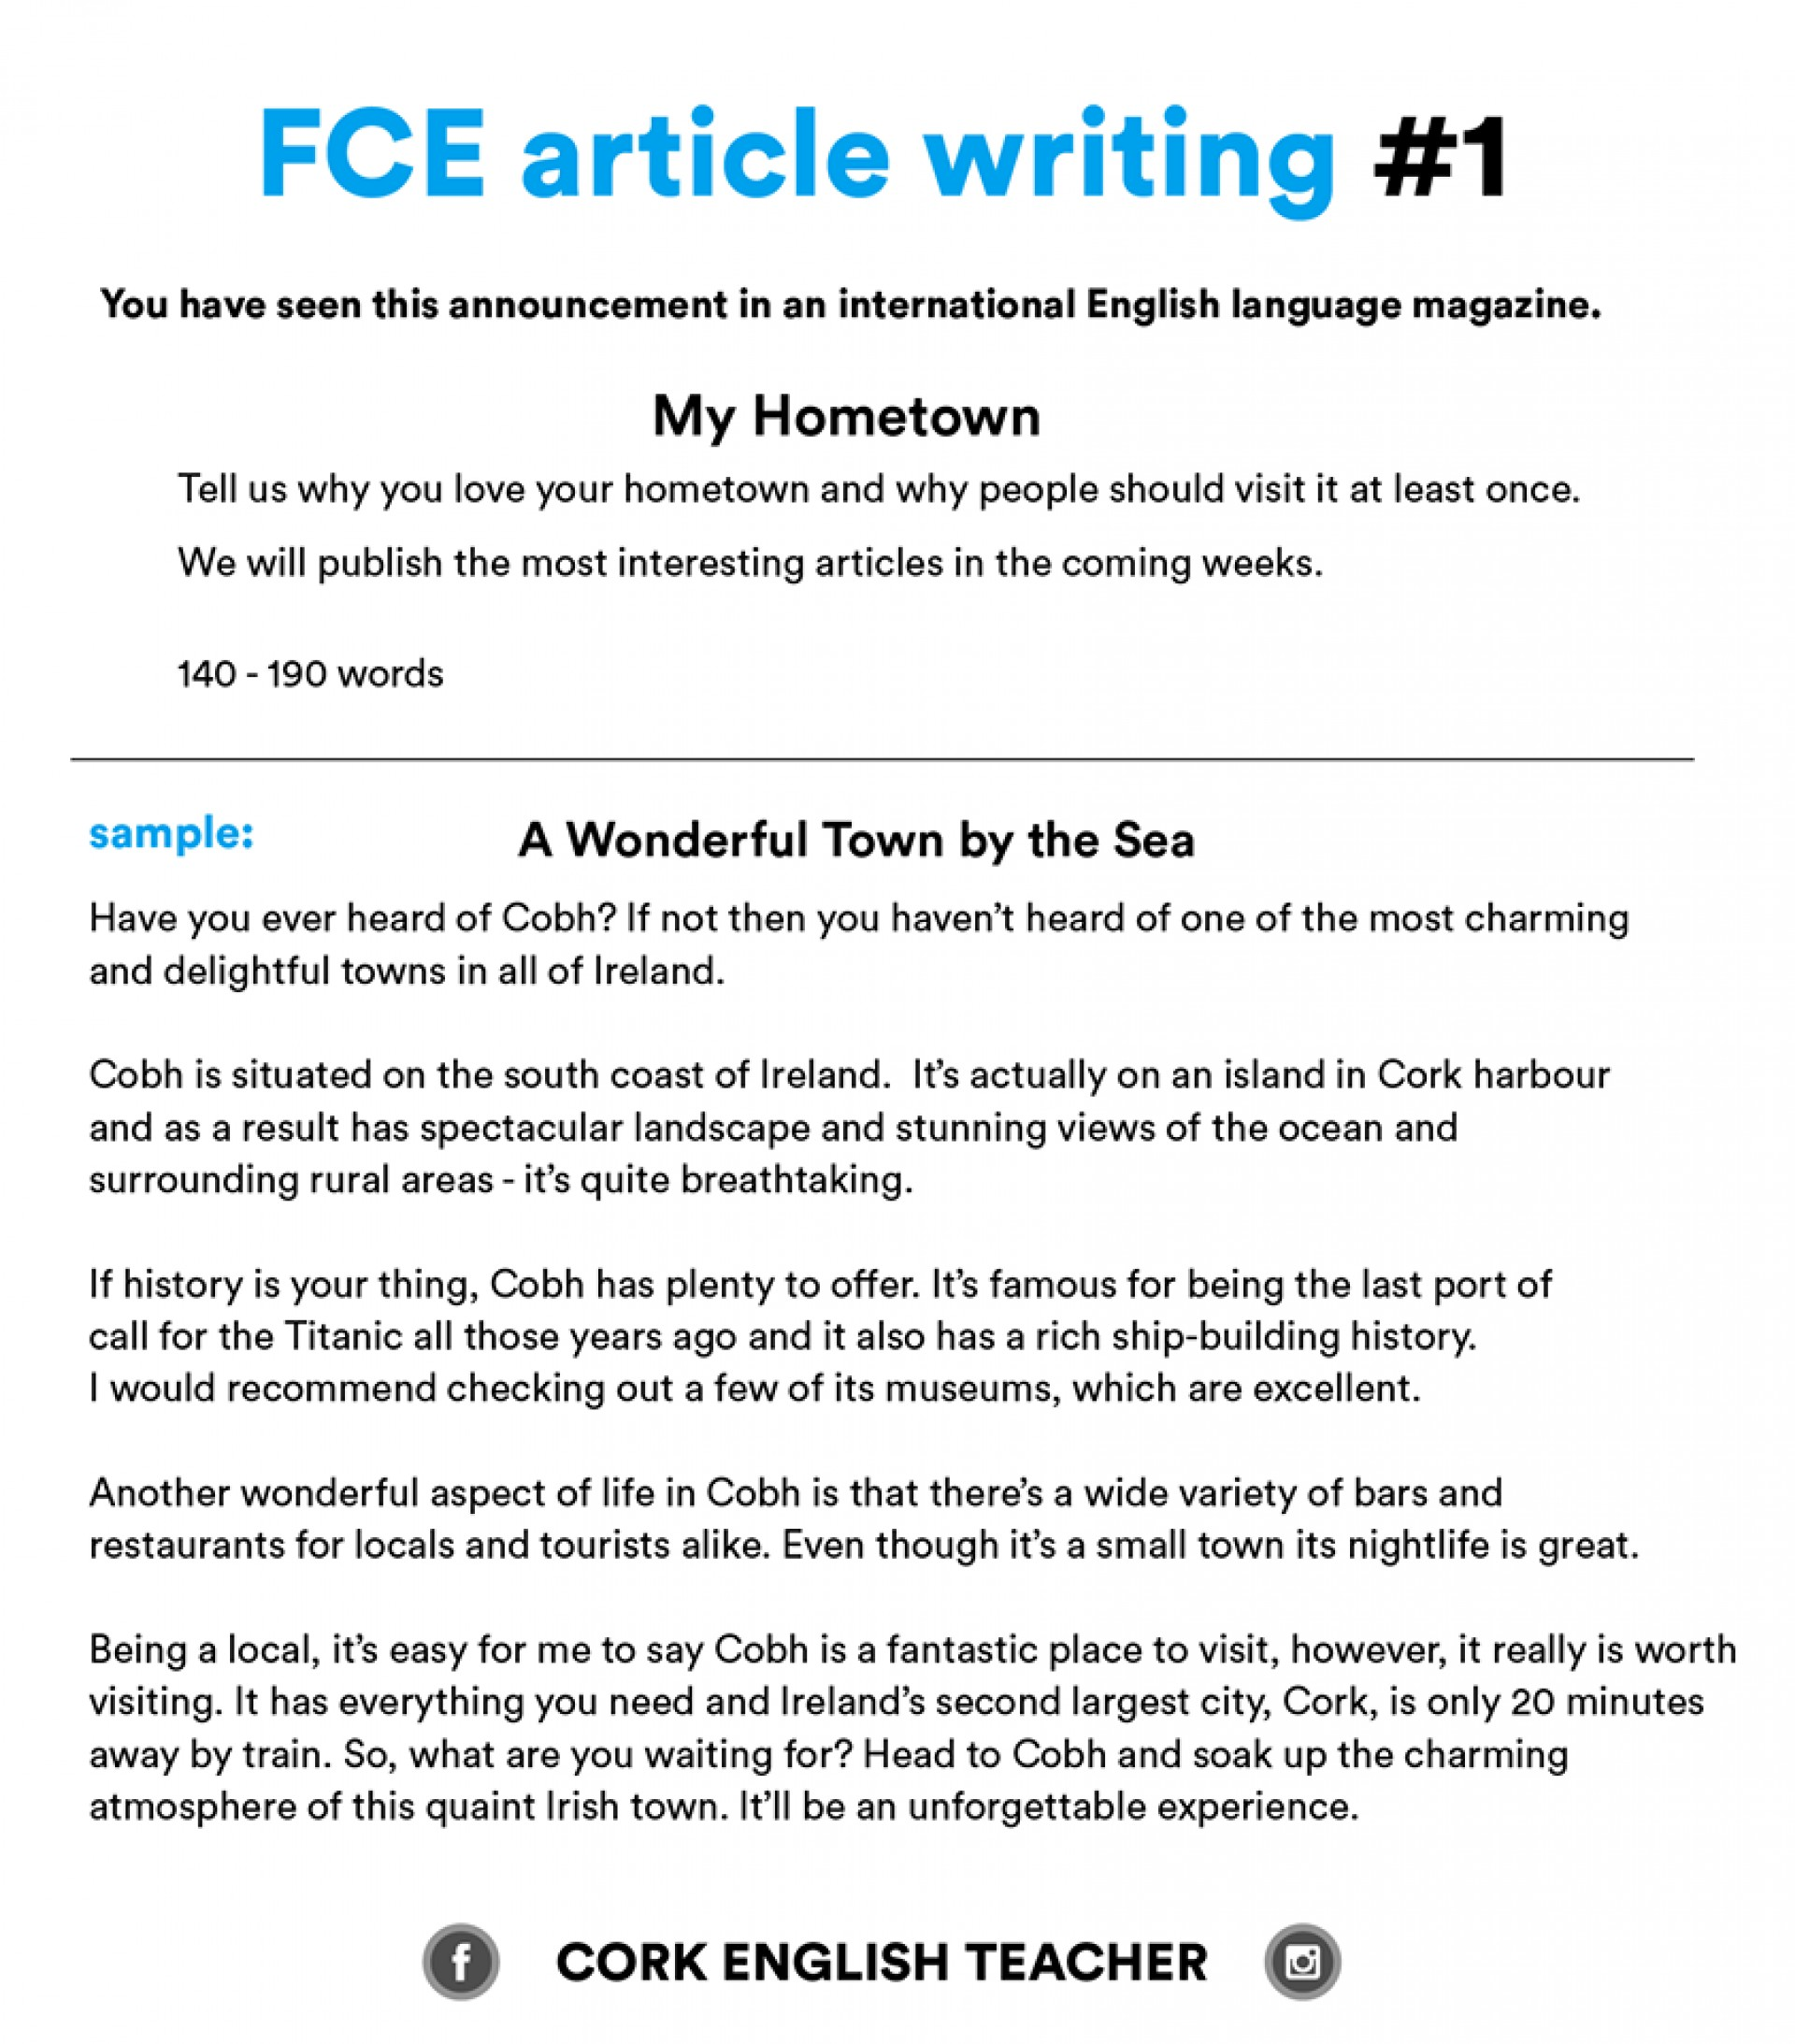 003 Essay Example Of My Hometown Exam Writing Staggering Spm On Delhi Malaysia 1920